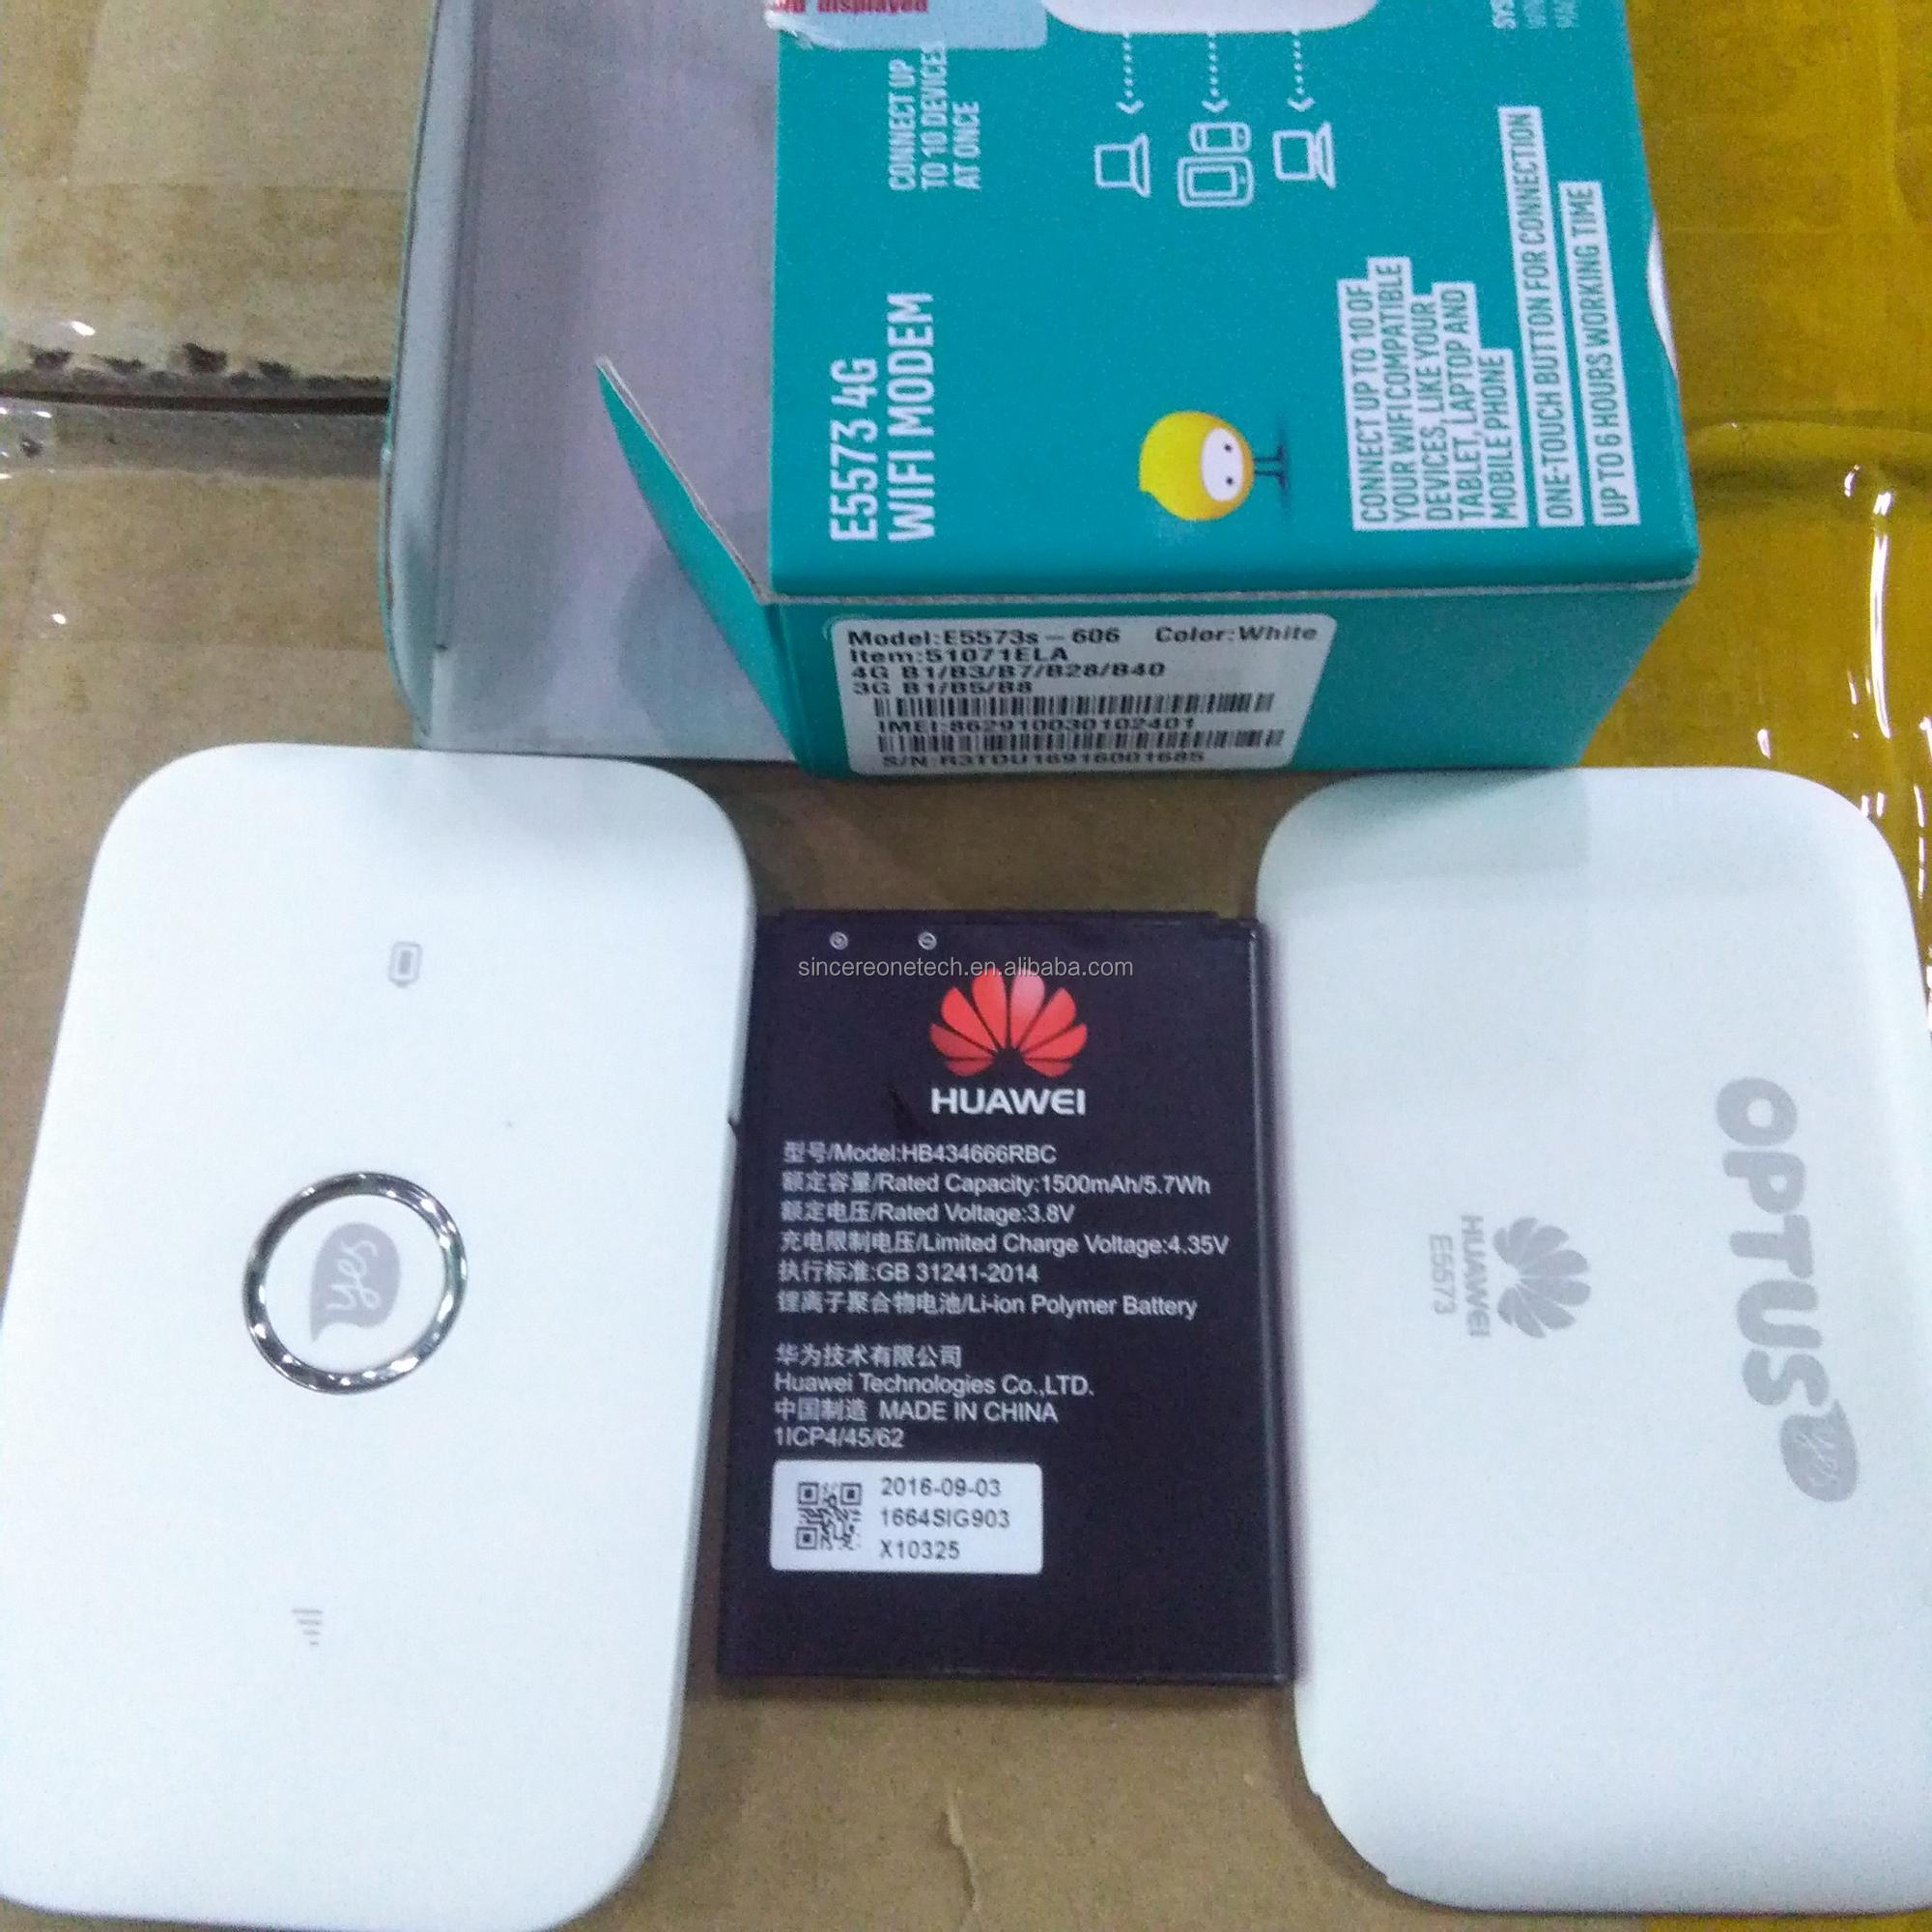 Hotsale 4g Wifi Router E5573s 606 Support Band 1 3 7 28 And 40 Modem Mifi Huawei E5573 Unlock All Gsm Tdd2300mhz Buy 606e5573s4g Product On